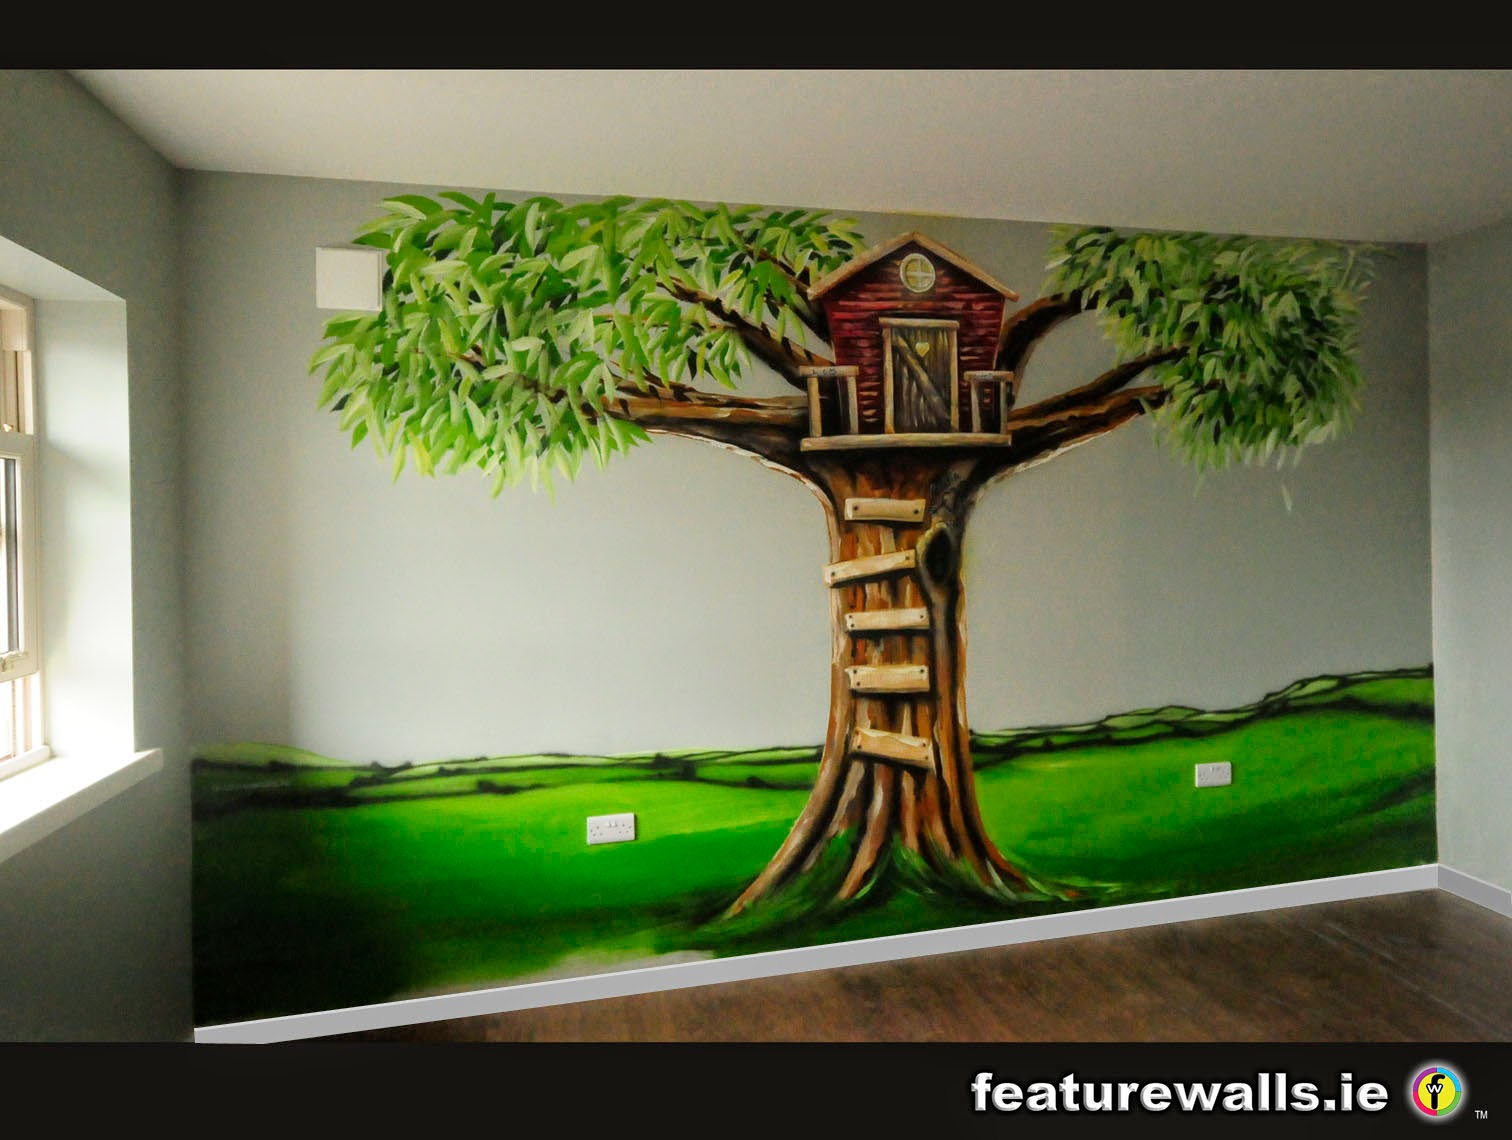 Mural Painting Professionals featurewalls.ie: Hand Painted ...